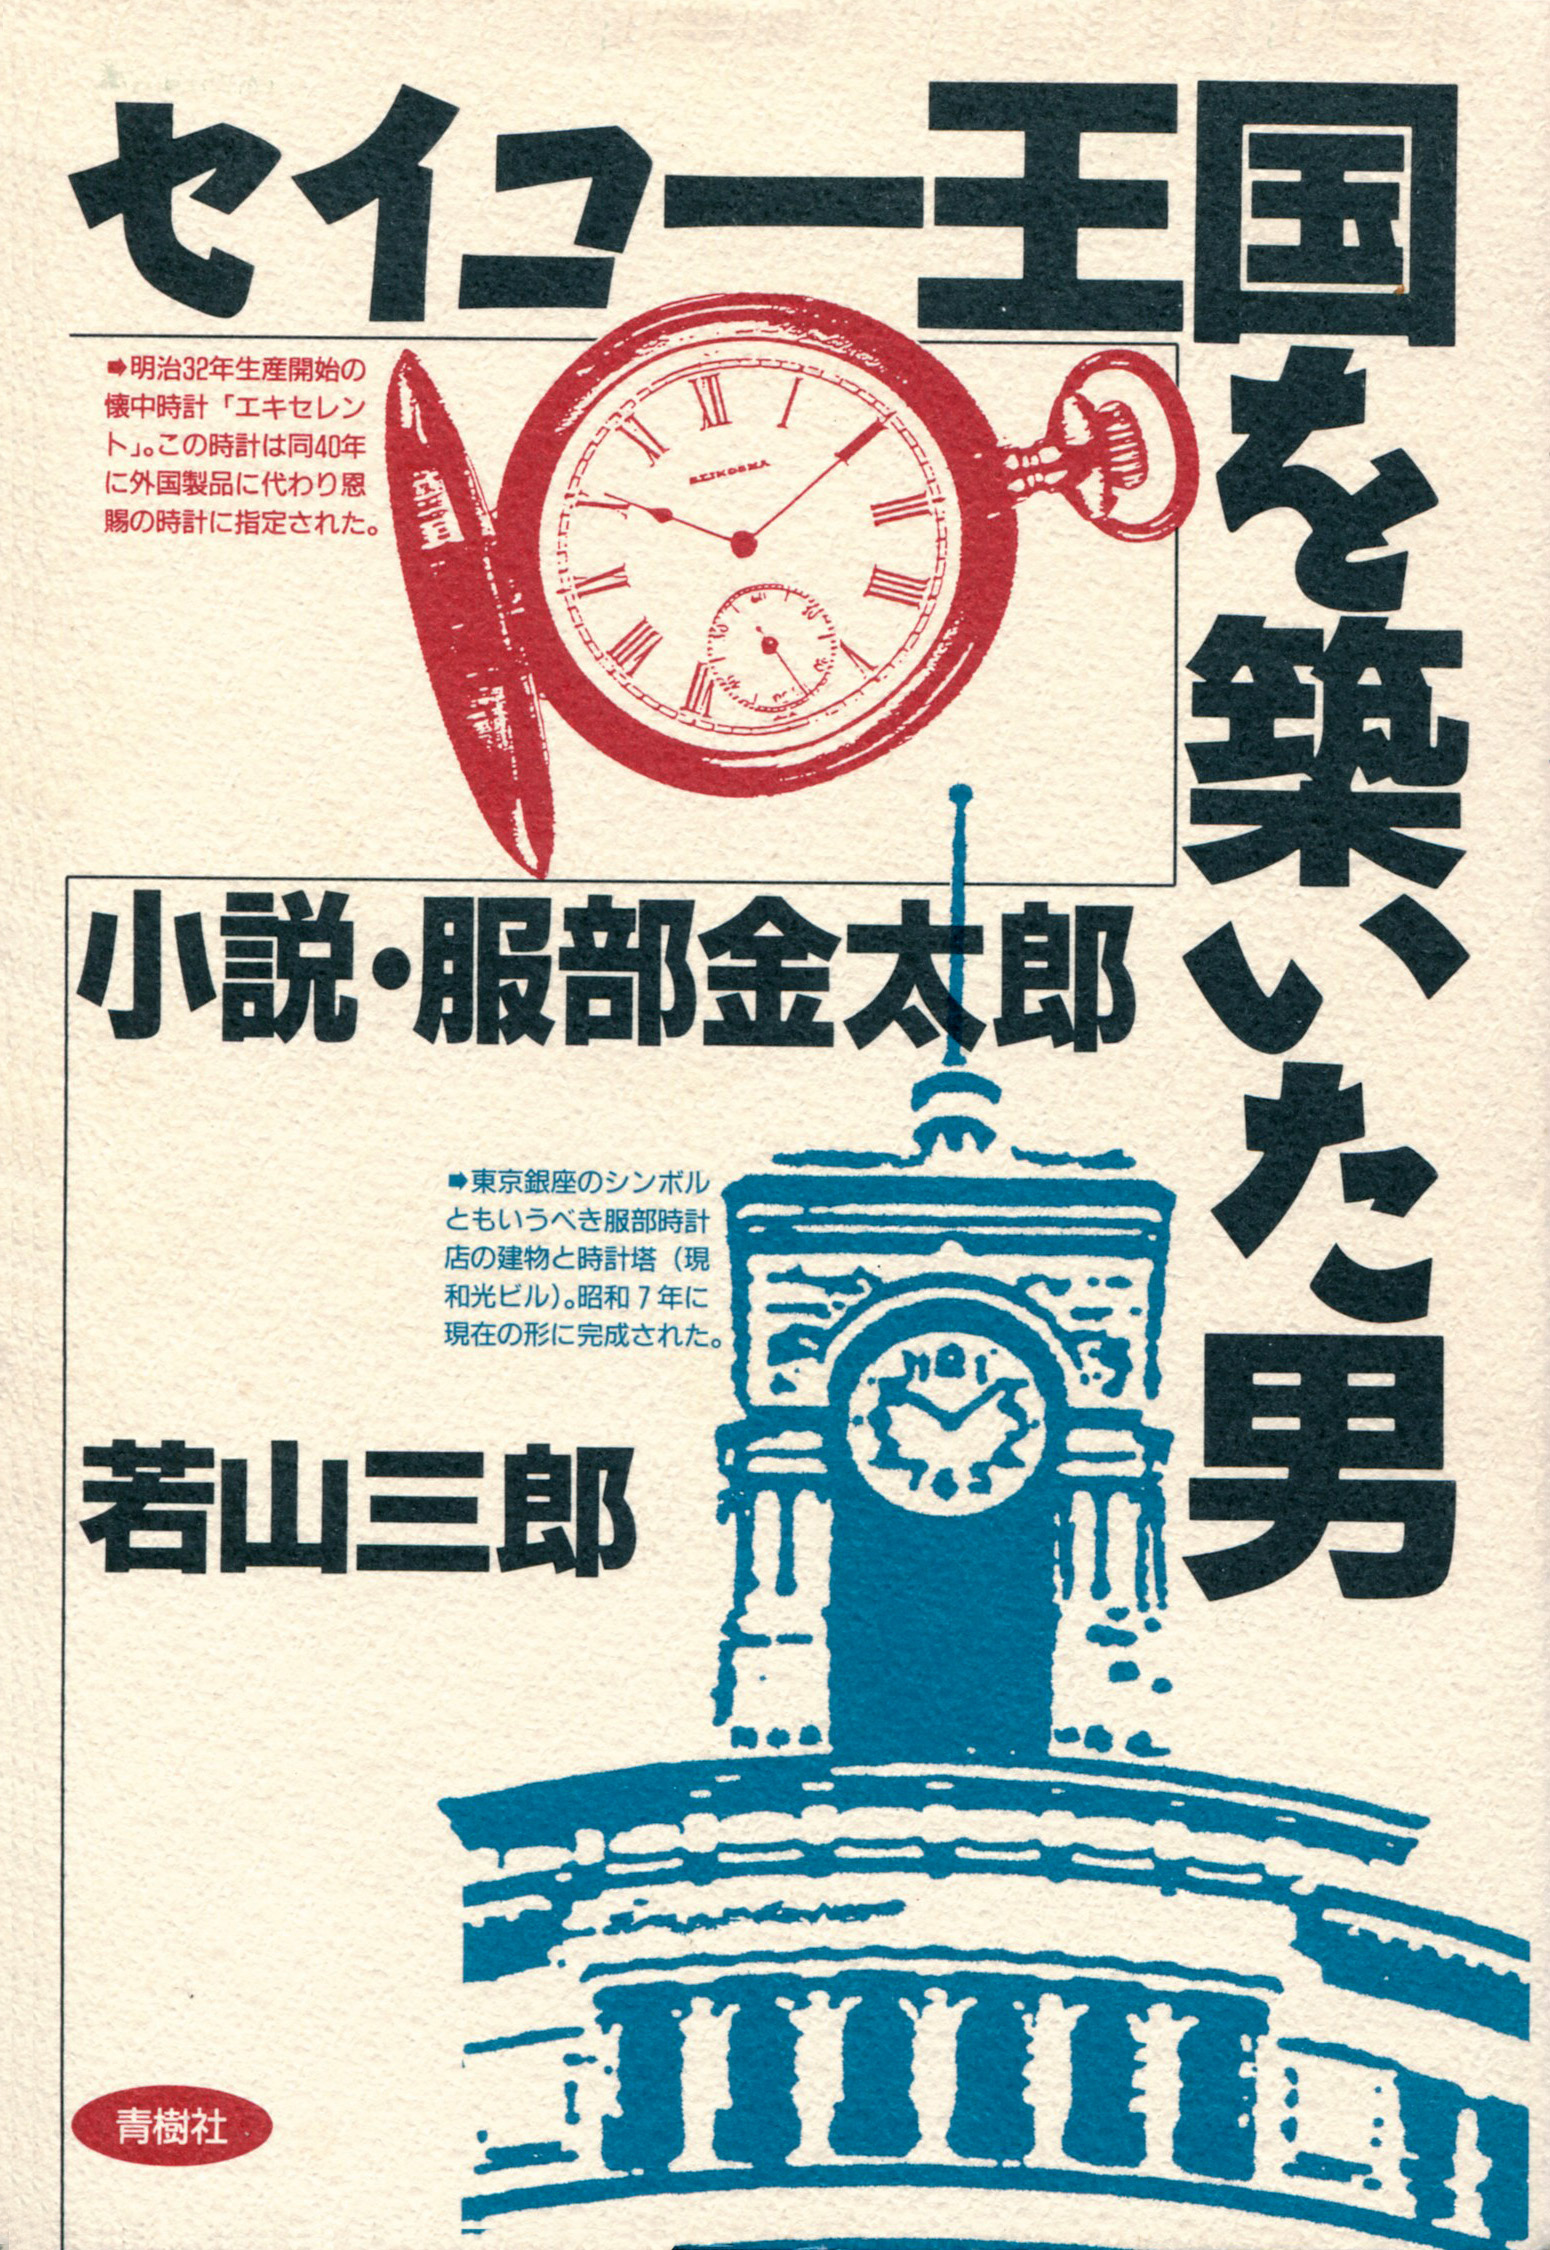 Cover - Kintaro Hattori - The Man Who Built a Kingdom Seiko